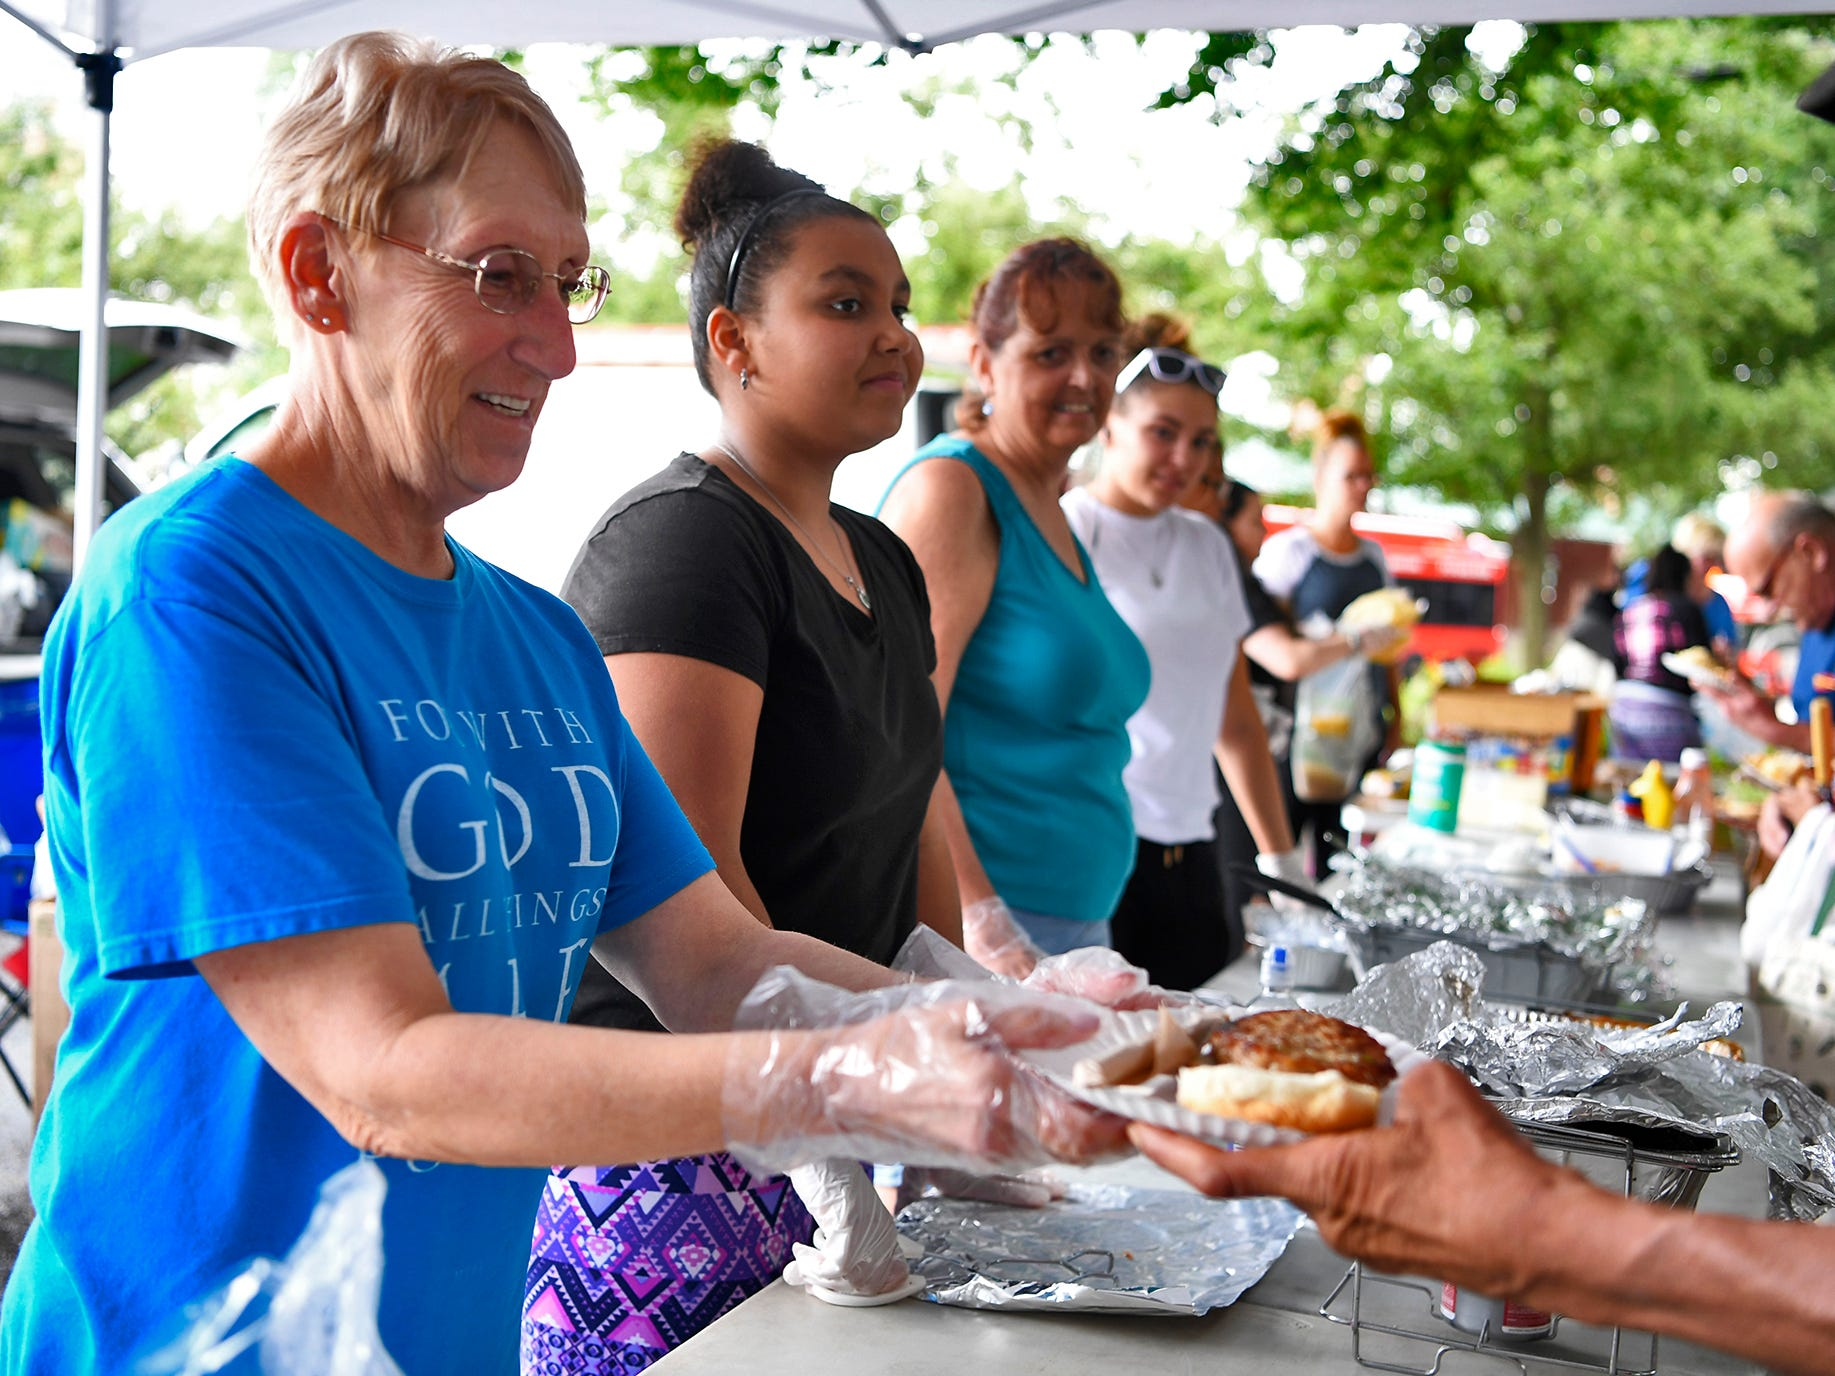 York Giving Helping Hands Volunteers  Tina Sweeley, left, Alysia Moore, both of York, Kathy Arnold of Manchester and Sierra Sauble of North York, right, dish up meals for York's homeless and under-privileged along the Rail Trail in the city, Sunday, August 18,  2018. John A. Pavoncello photo